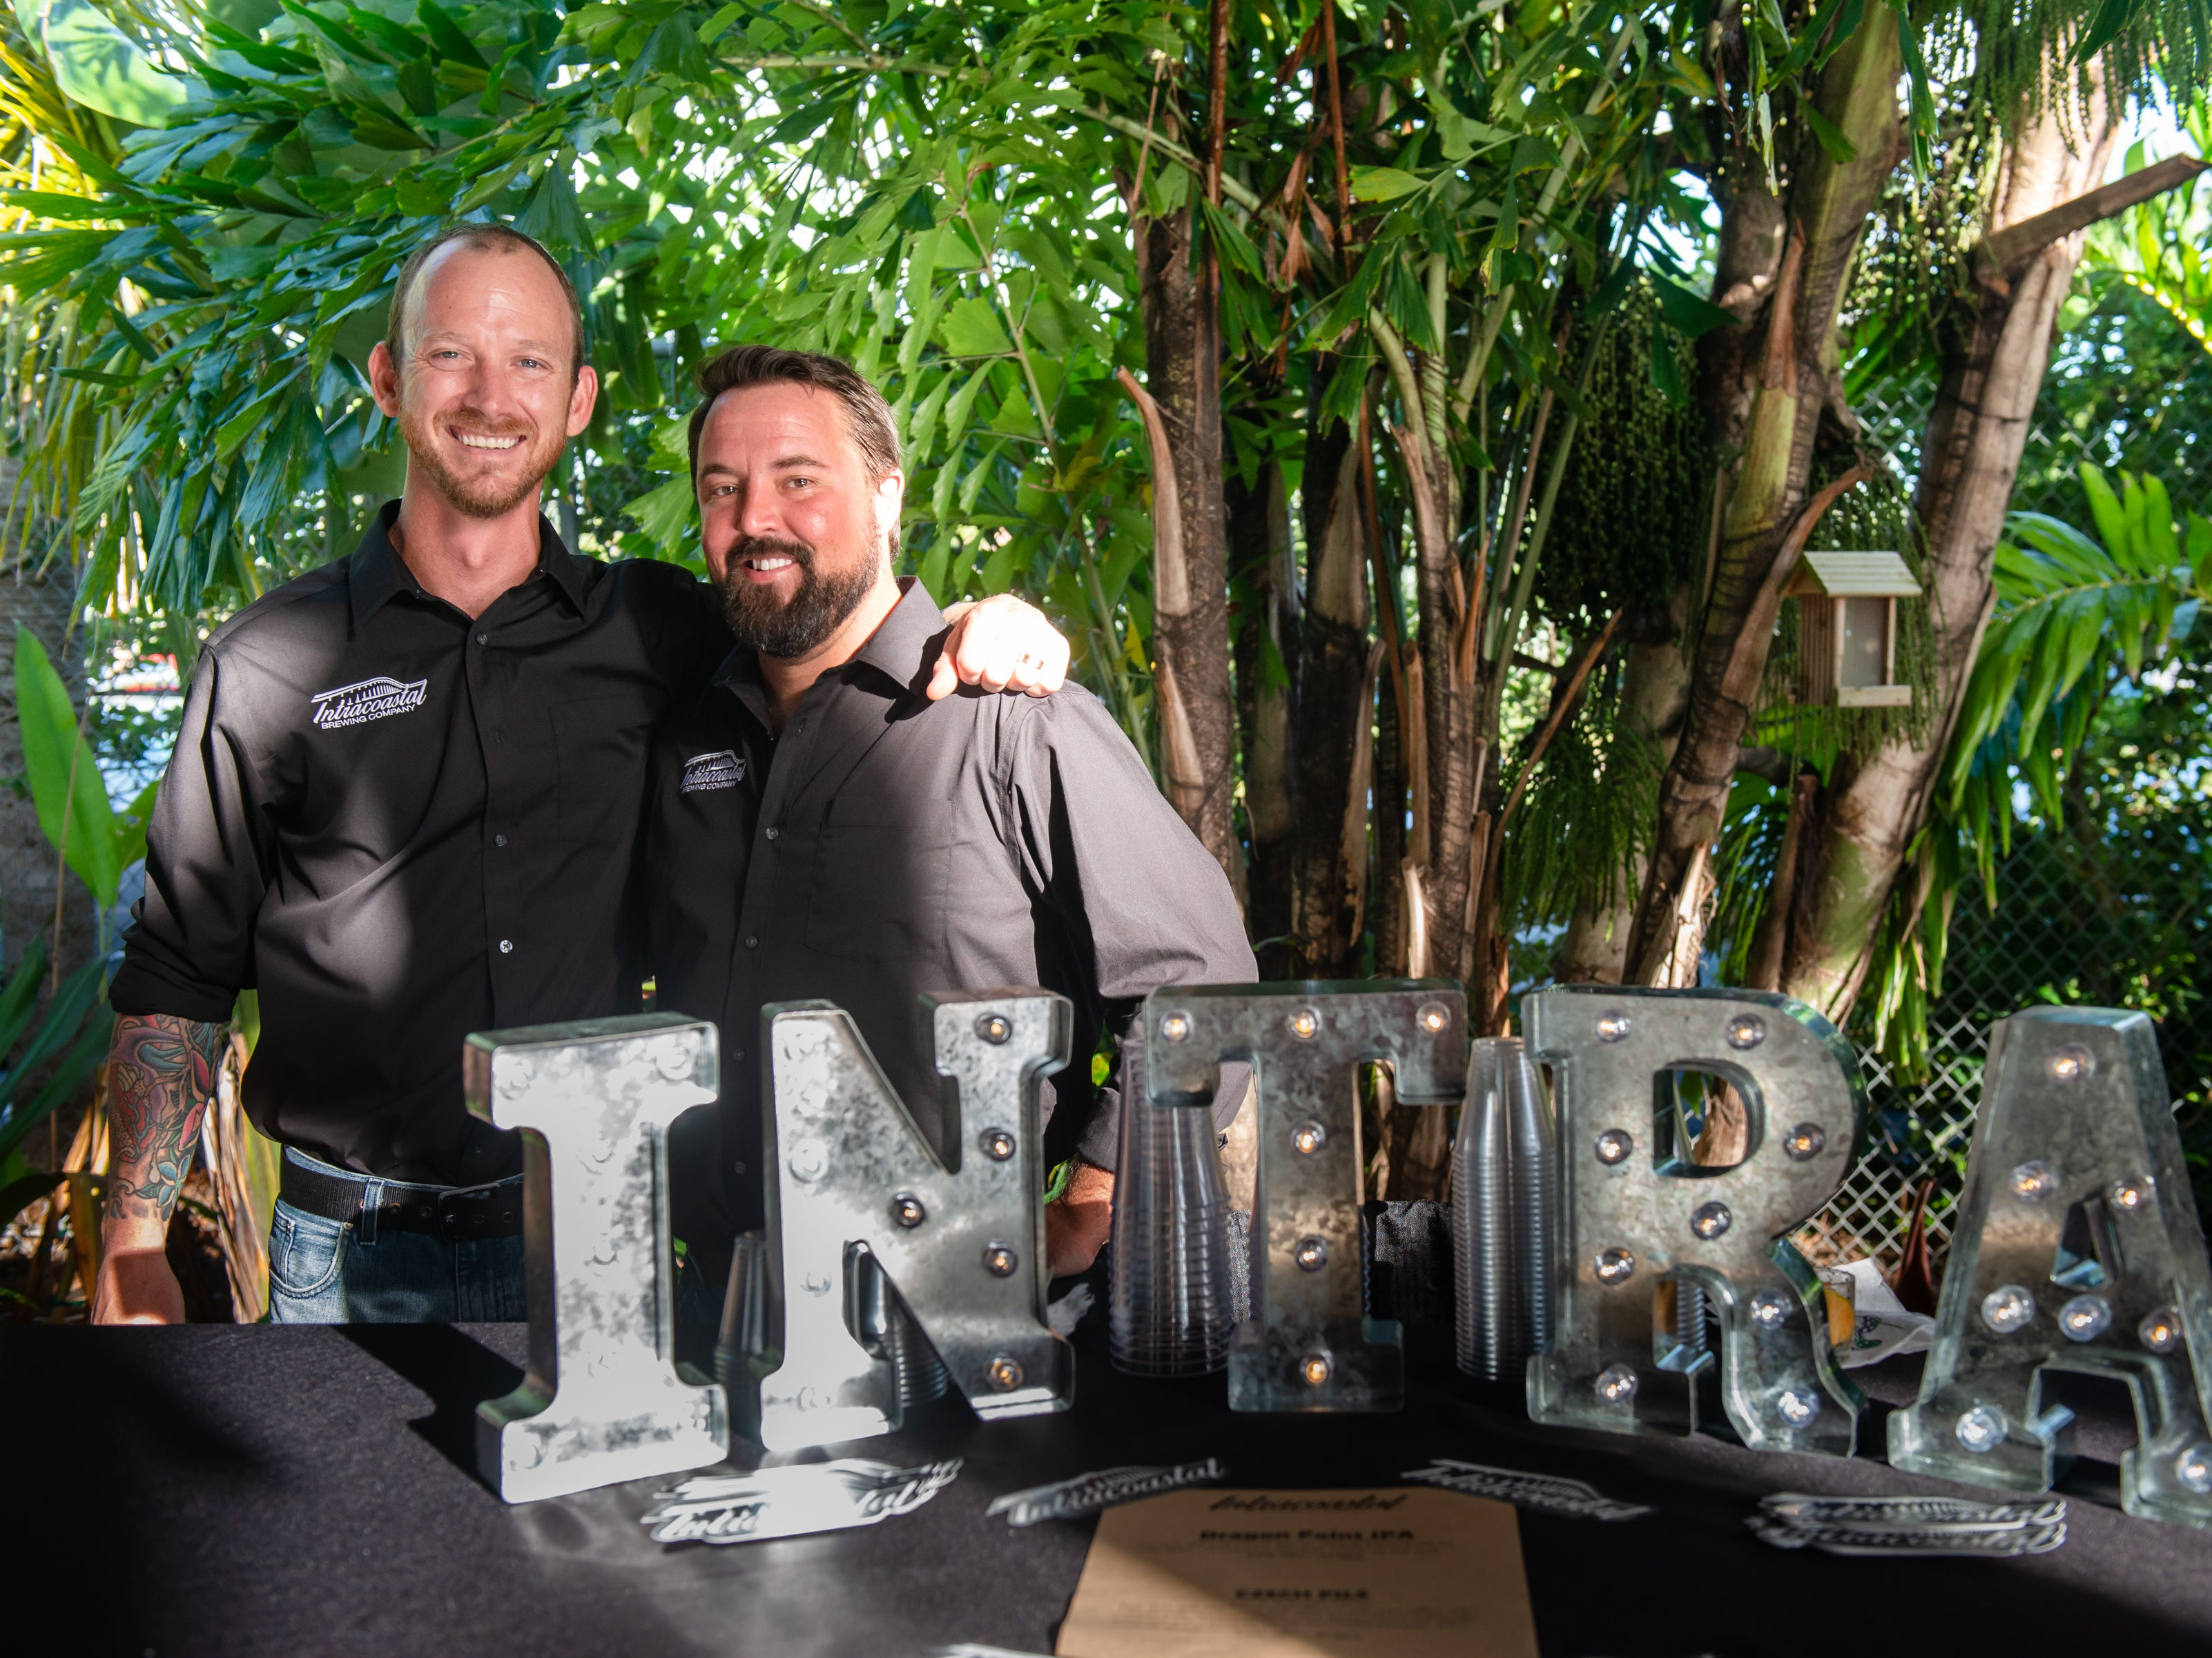 Kyle Smyth and John Curtis of Intracoastal Brewing Company at the James Beard Foundation Celebrity Chef Dinner held at the Brevard Zoo. (Photo by Amanda Stratford, for FLORIDA TODAY)